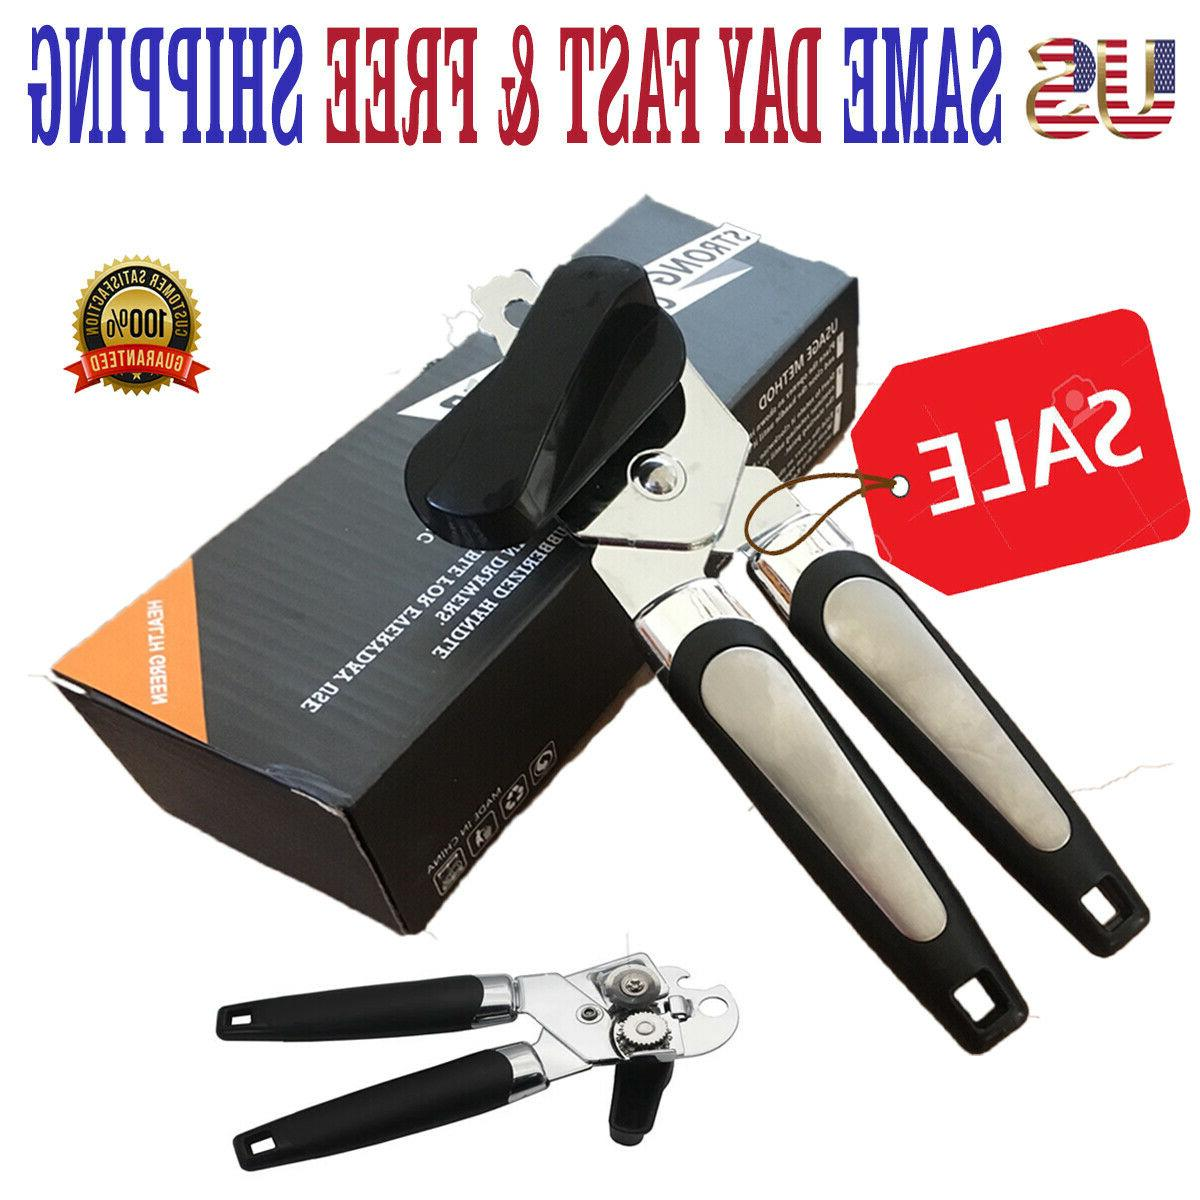 premium can opener stainless steel blade professional